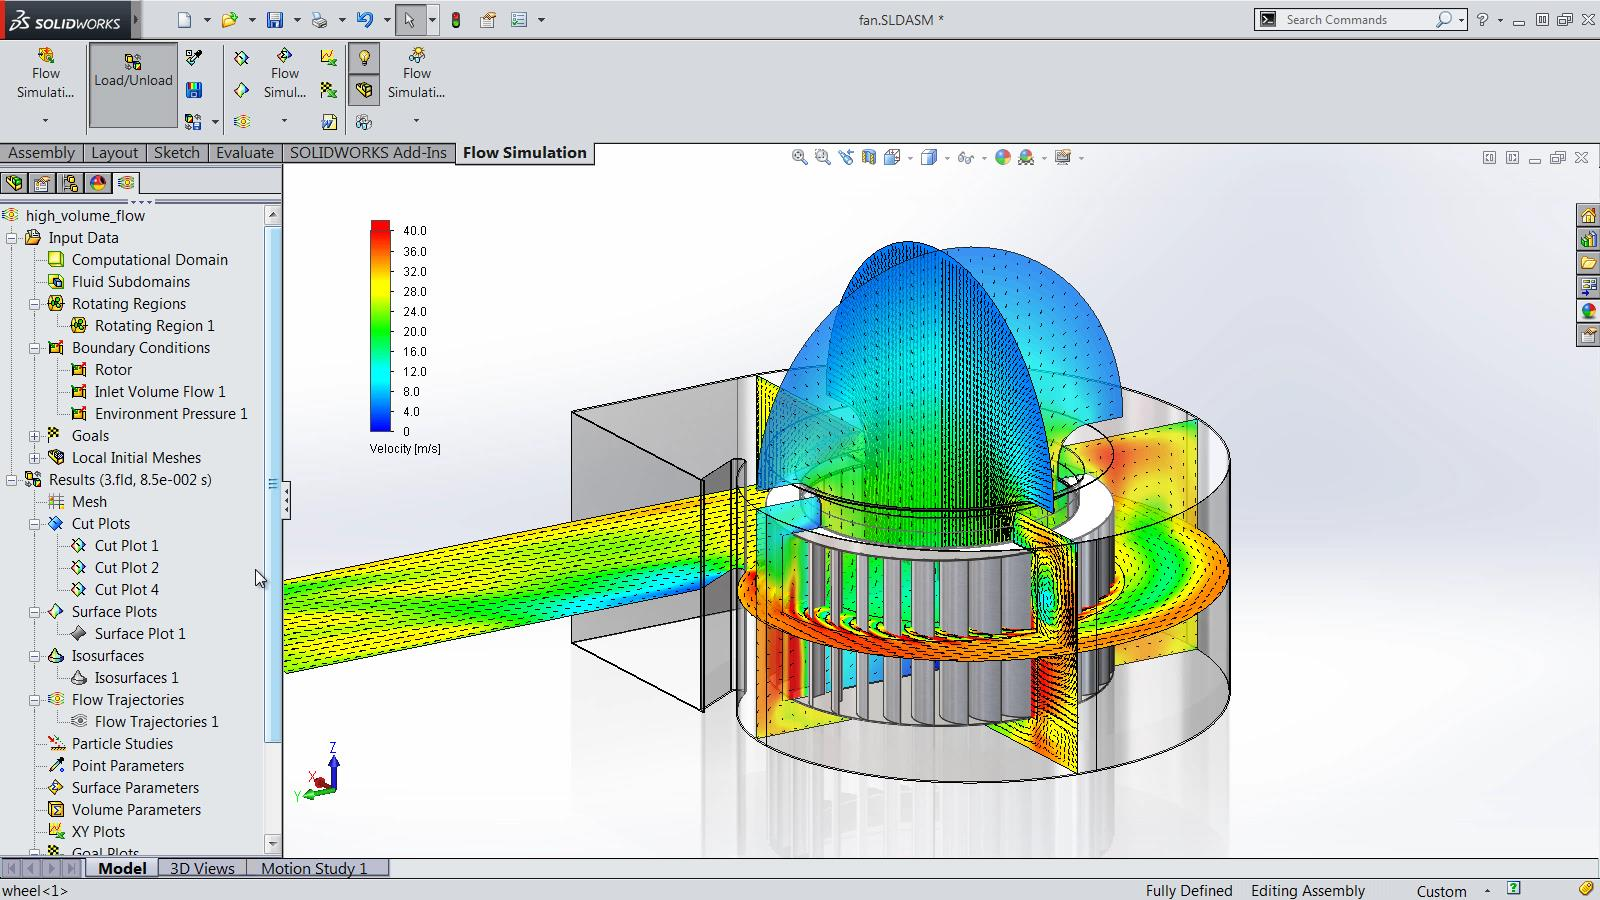 SOLIDWORKS 2015 Sneak Peek: Rotating Mesh Region for Flow Simulation